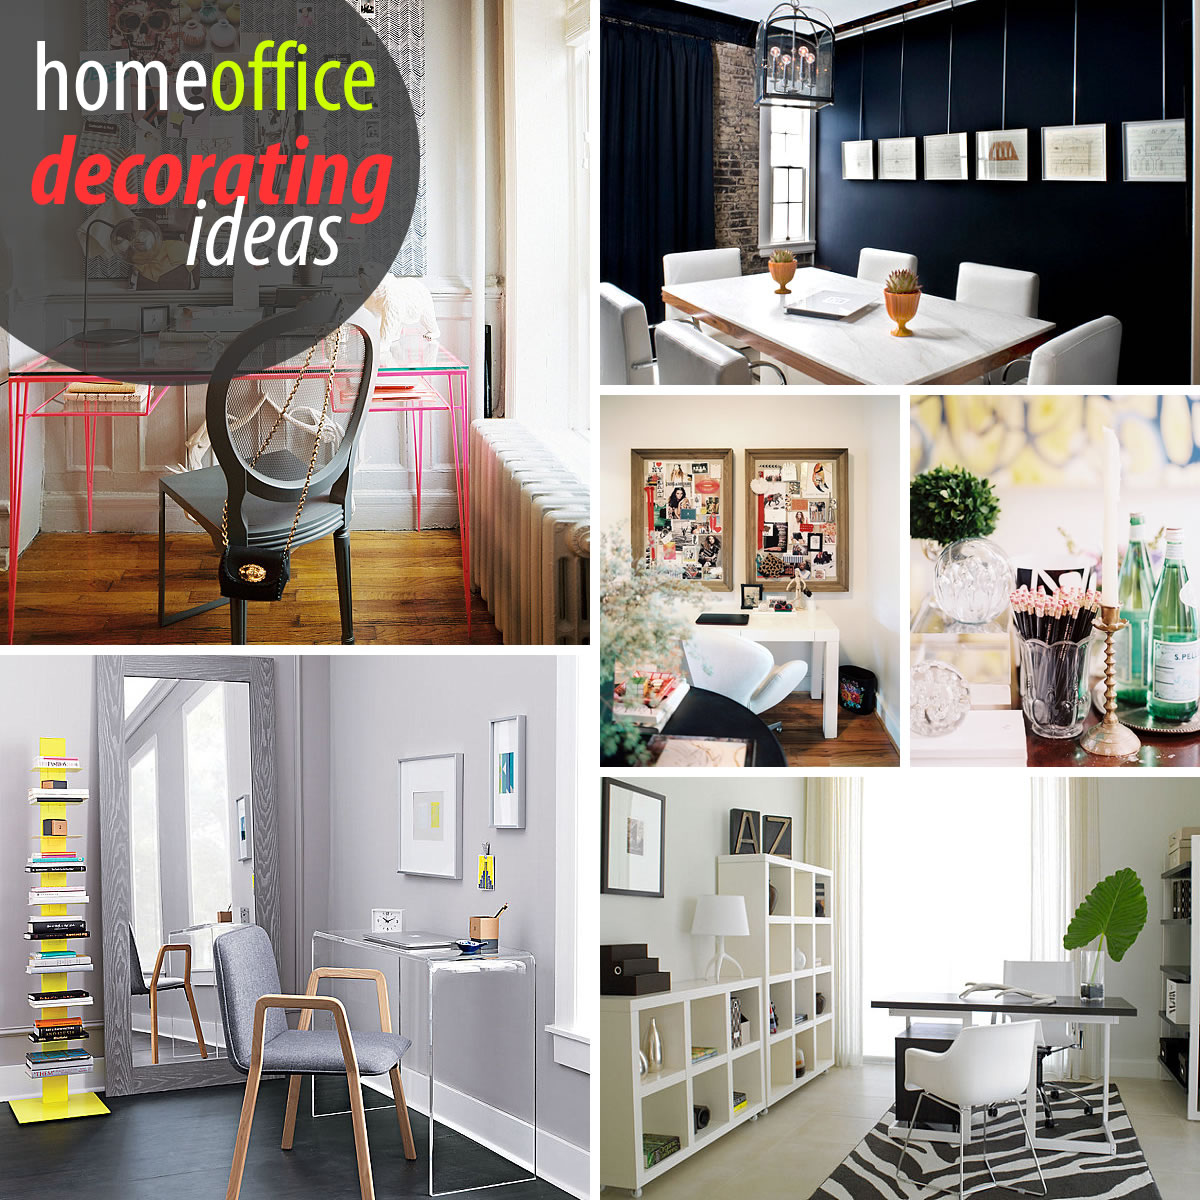 Creative home office decorating ideas for Decorating ideas for home office